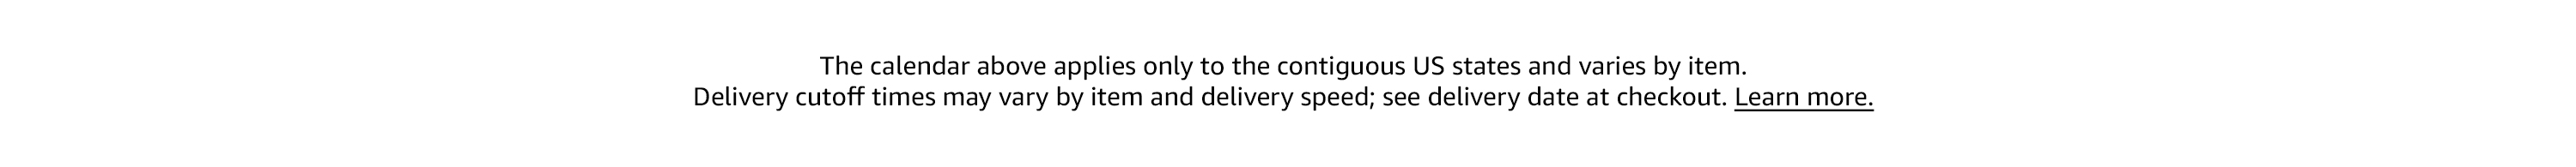 Delivery speed may vary by locale and item: learn more